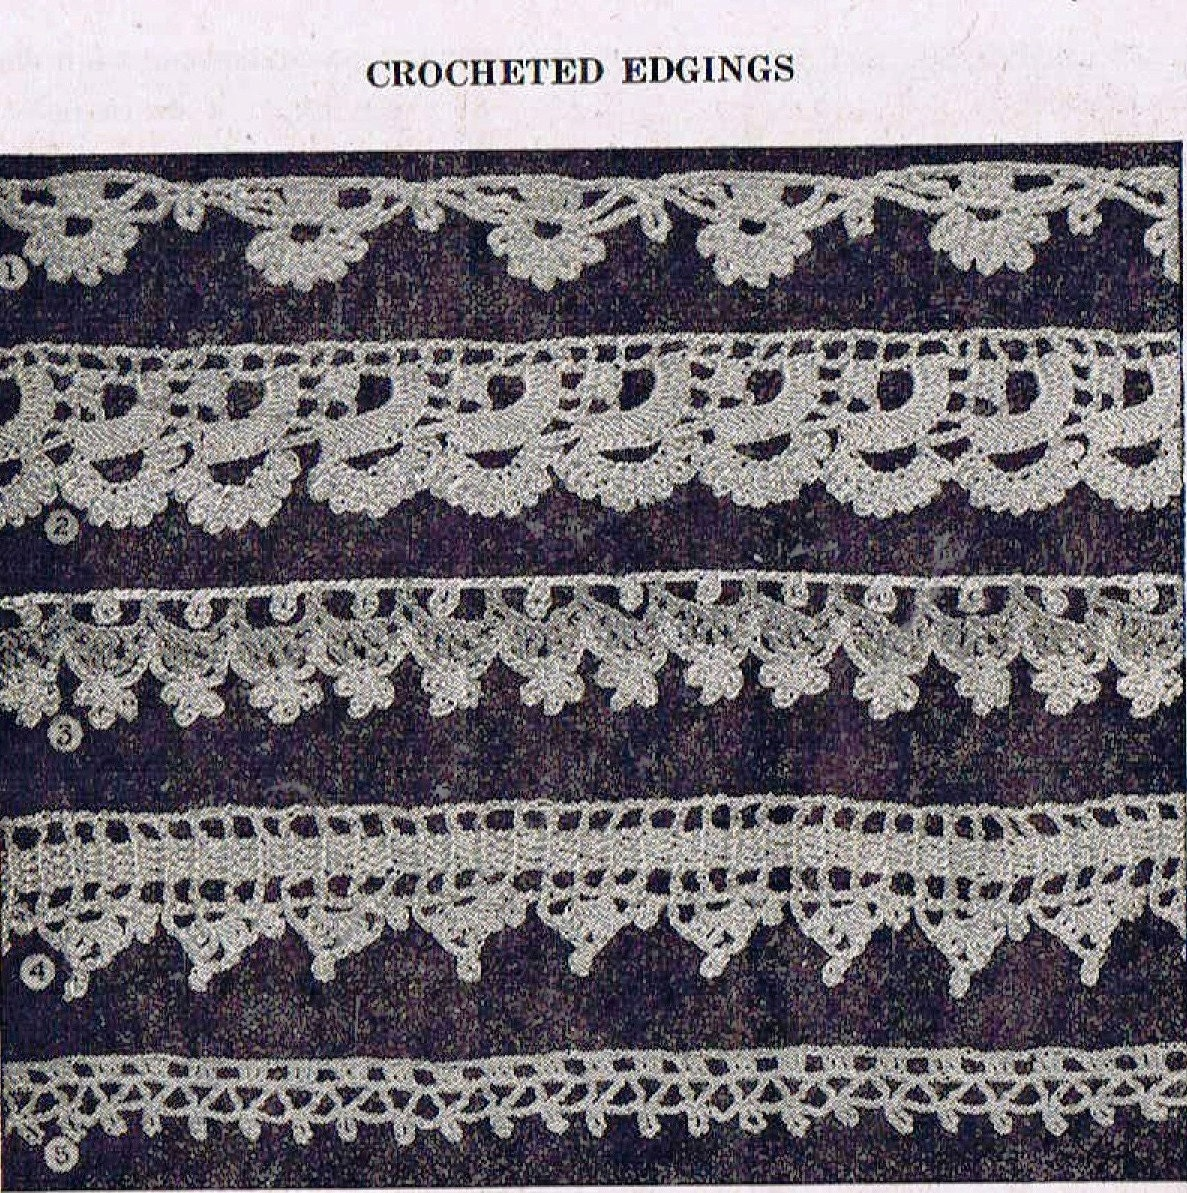 1940s crochet patterns five lovely edges florals scallops taken this is a digital file bankloansurffo Choice Image